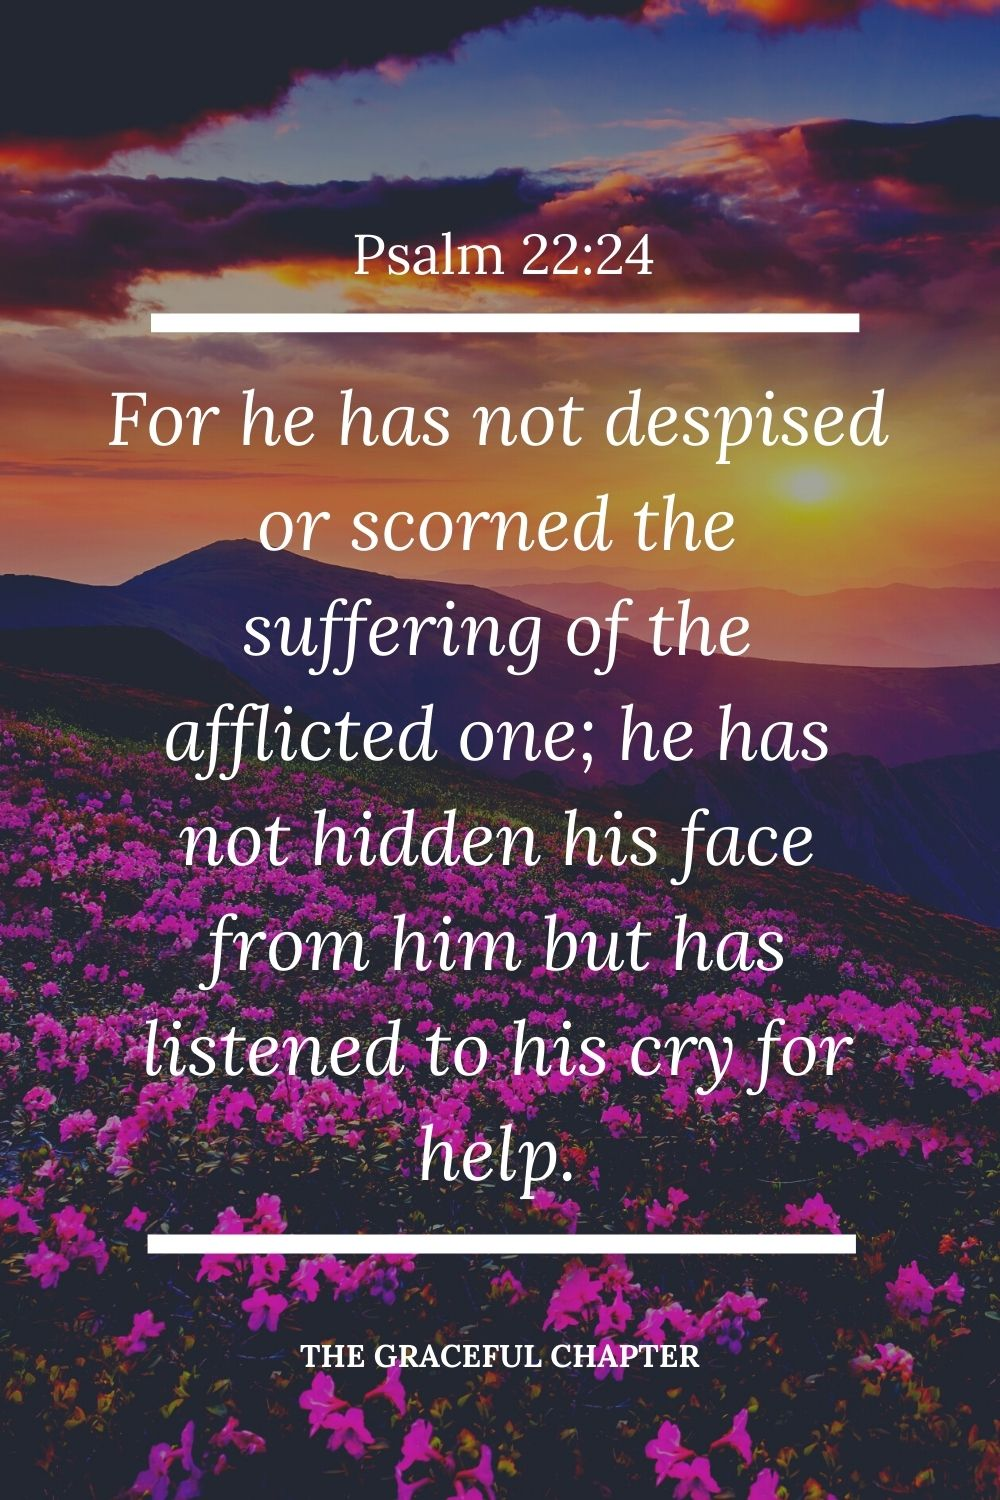 For he has not despised or scorned  the suffering of the afflicted one; he has not hidden his face from him but has listened to his cry for help Psalm 22:24.